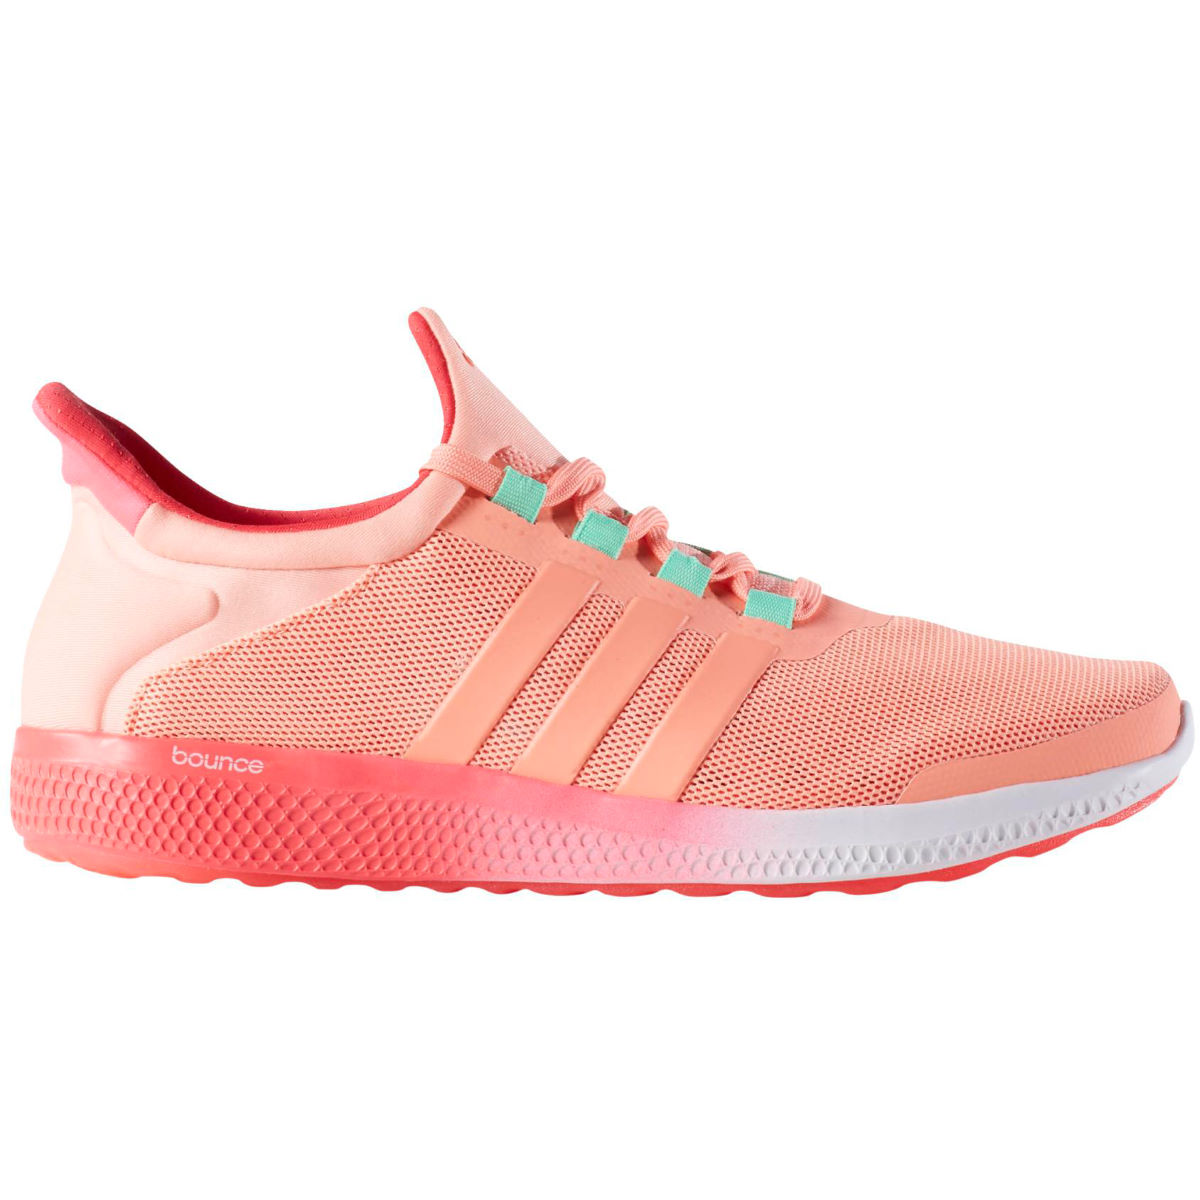 Womens Shoes Cheap Prices